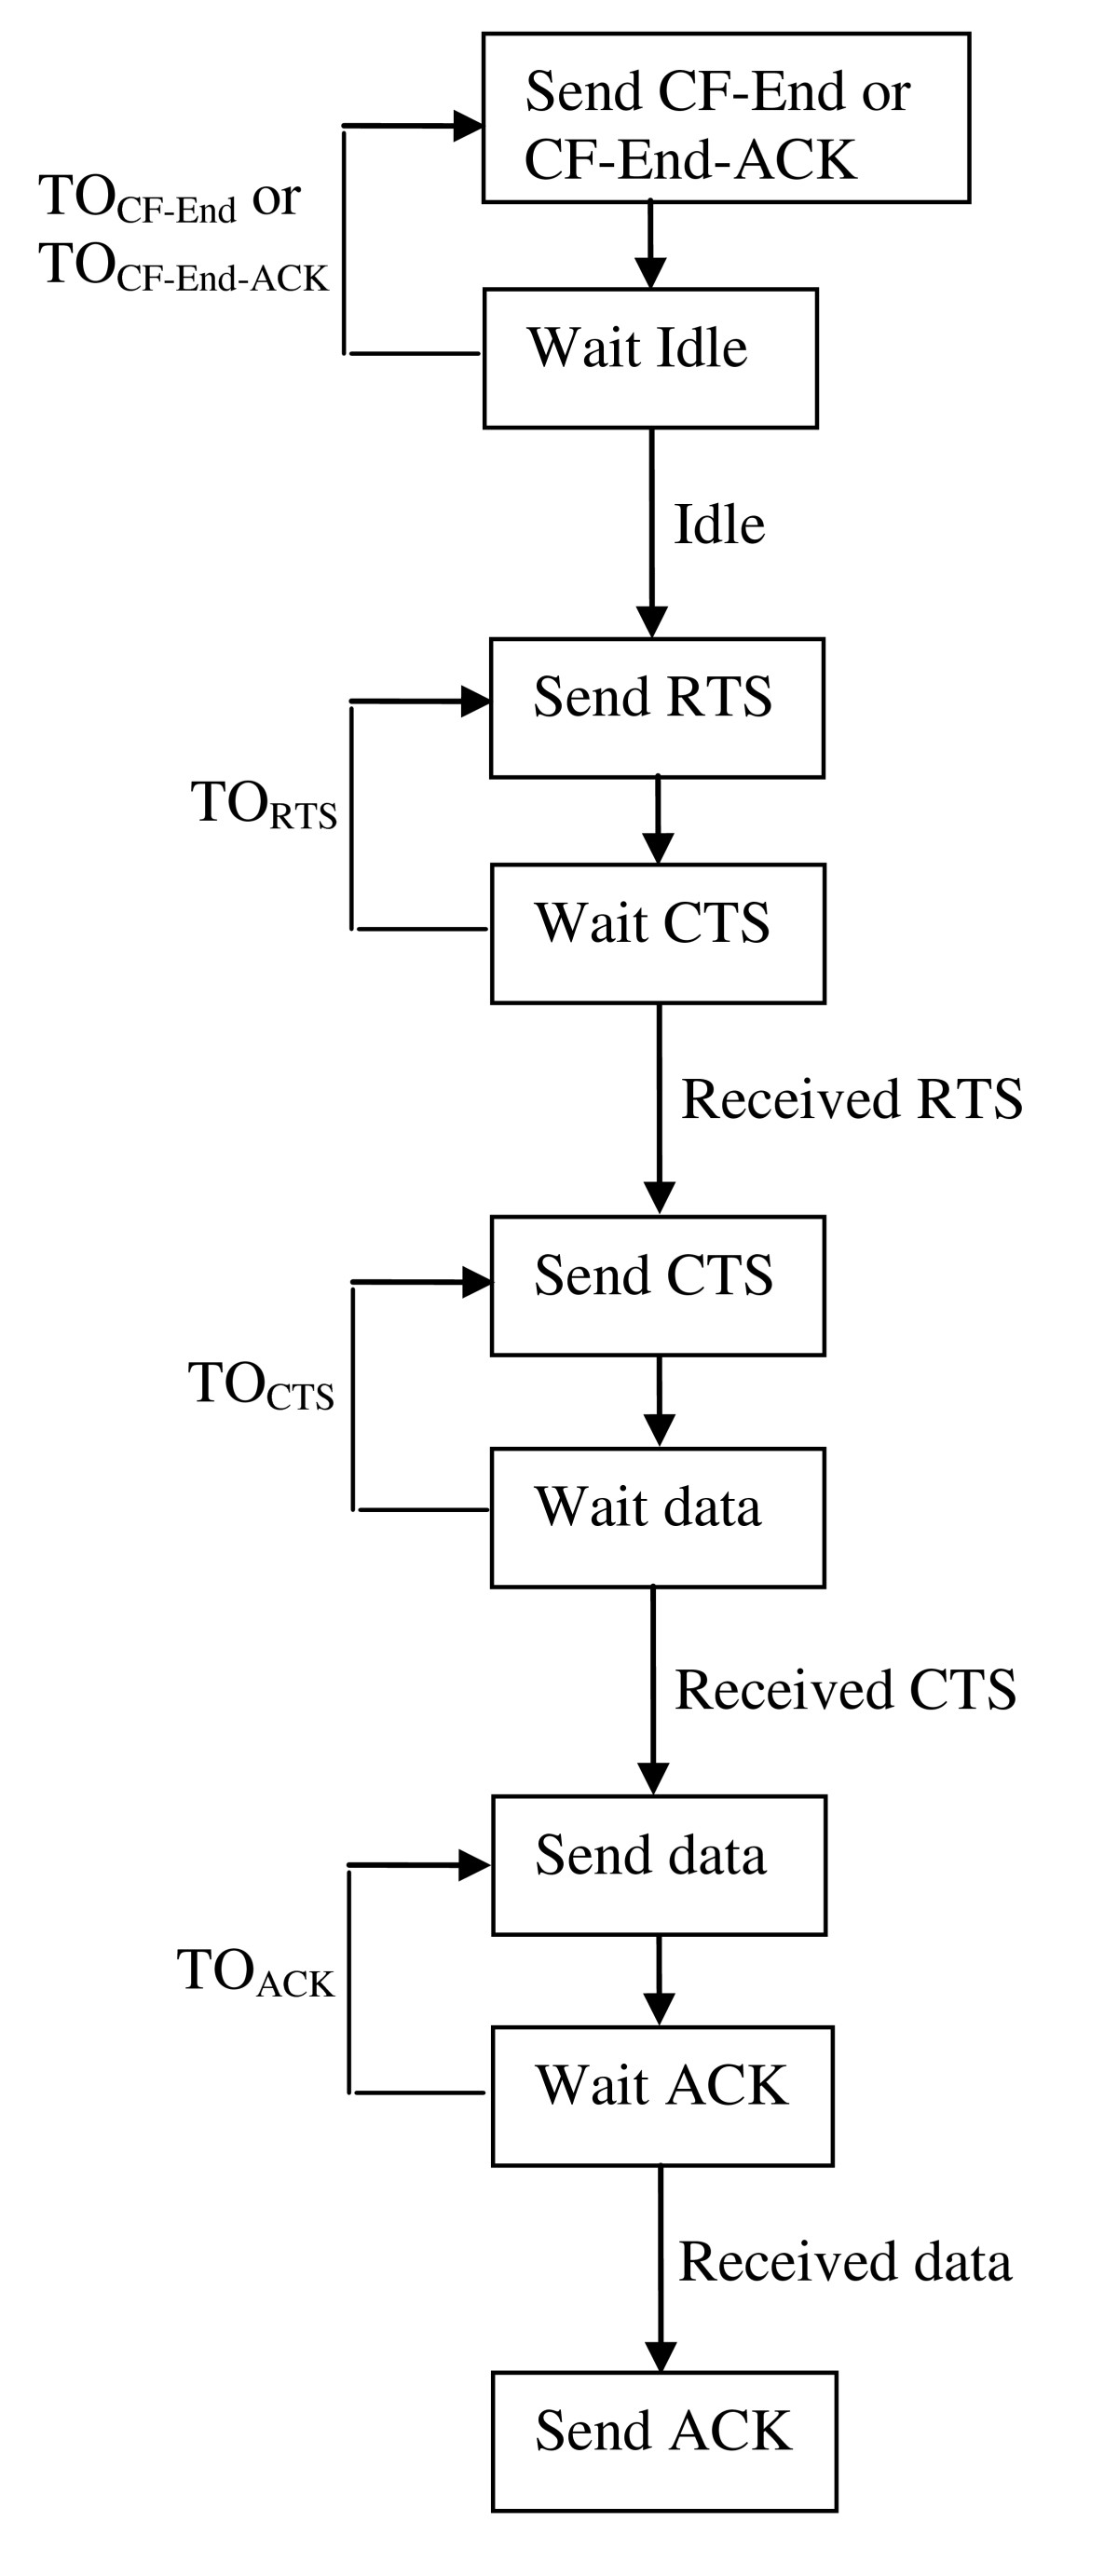 https://static-content.springer.com/image/art%3A10.1186%2F1687-417X-2011-4/MediaObjects/13635_2010_Article_7_Fig3_HTML.jpg